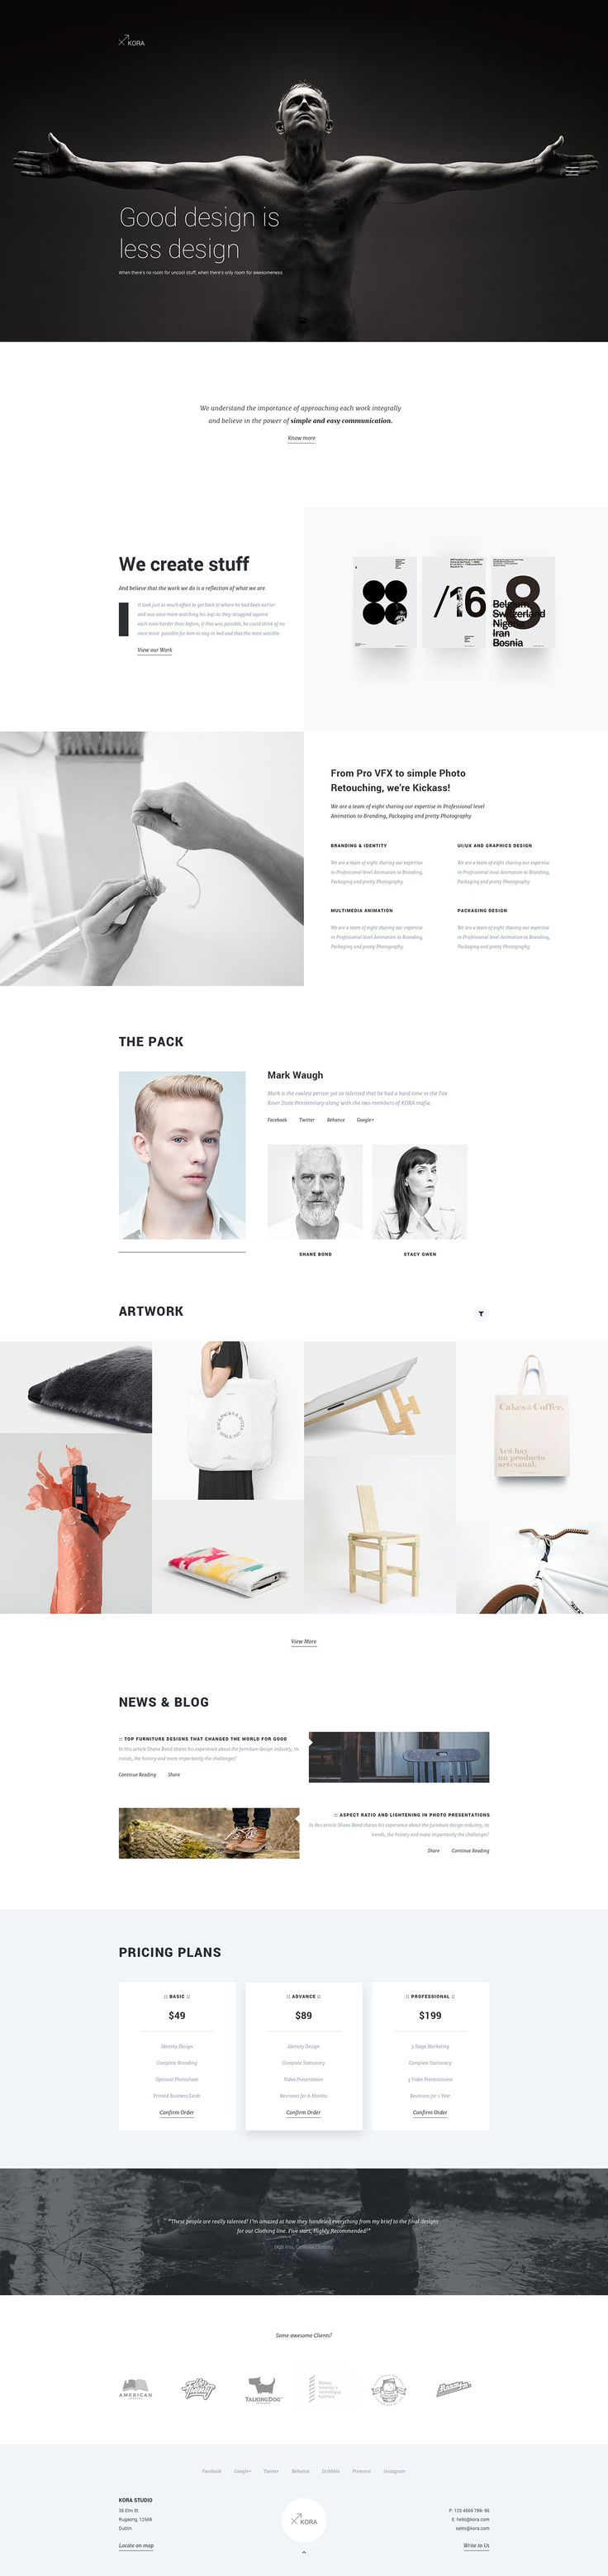 Kora - Portfolio Template for Agency & Freelancers on Behance